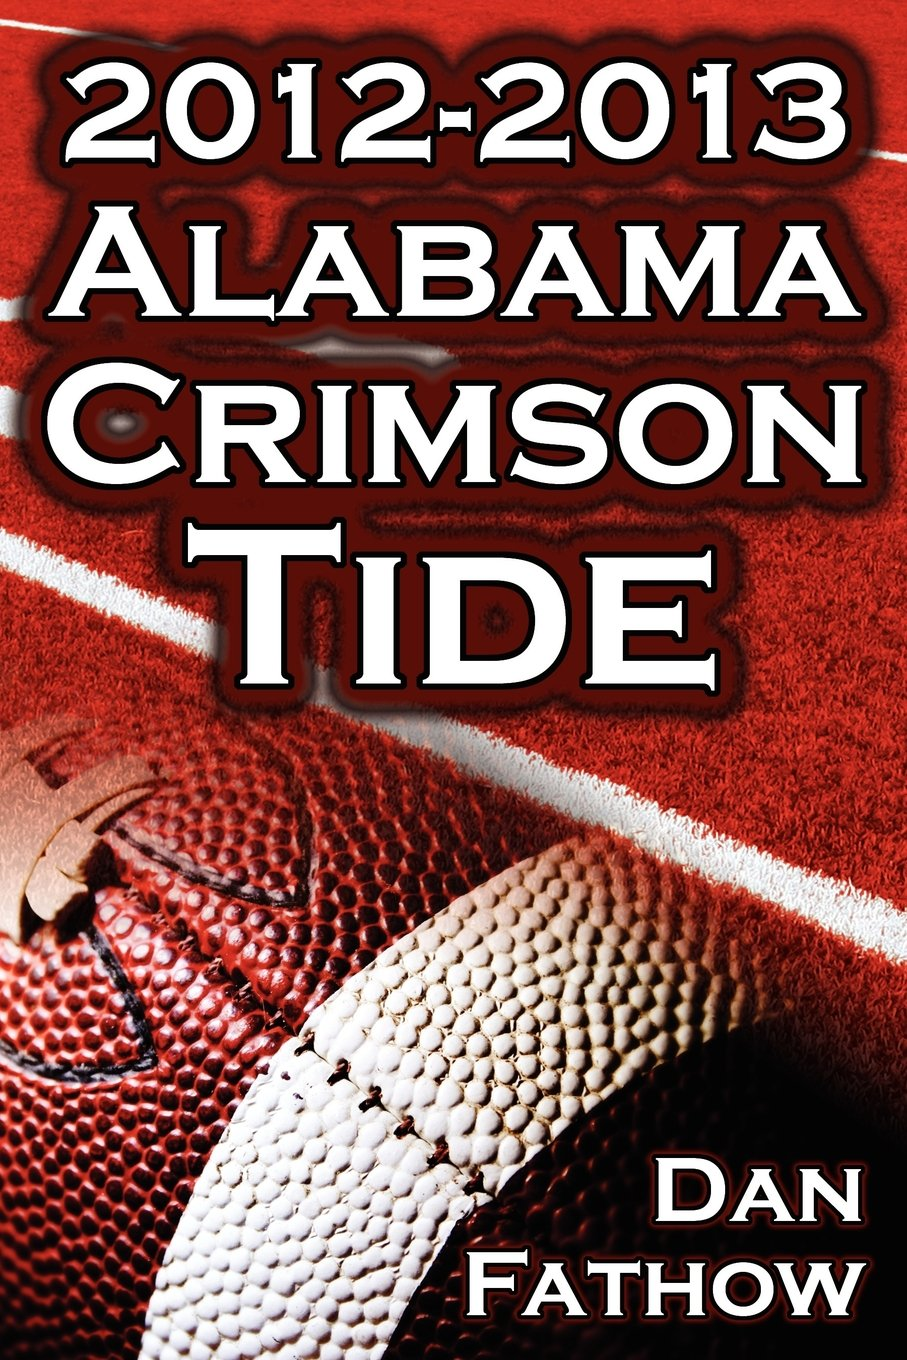 The 2012 - 2013 Alabama Crimson Tide - SEC Champions, the Pursuit of Back-To-Back BCS National Championships, & a College Football Legacy